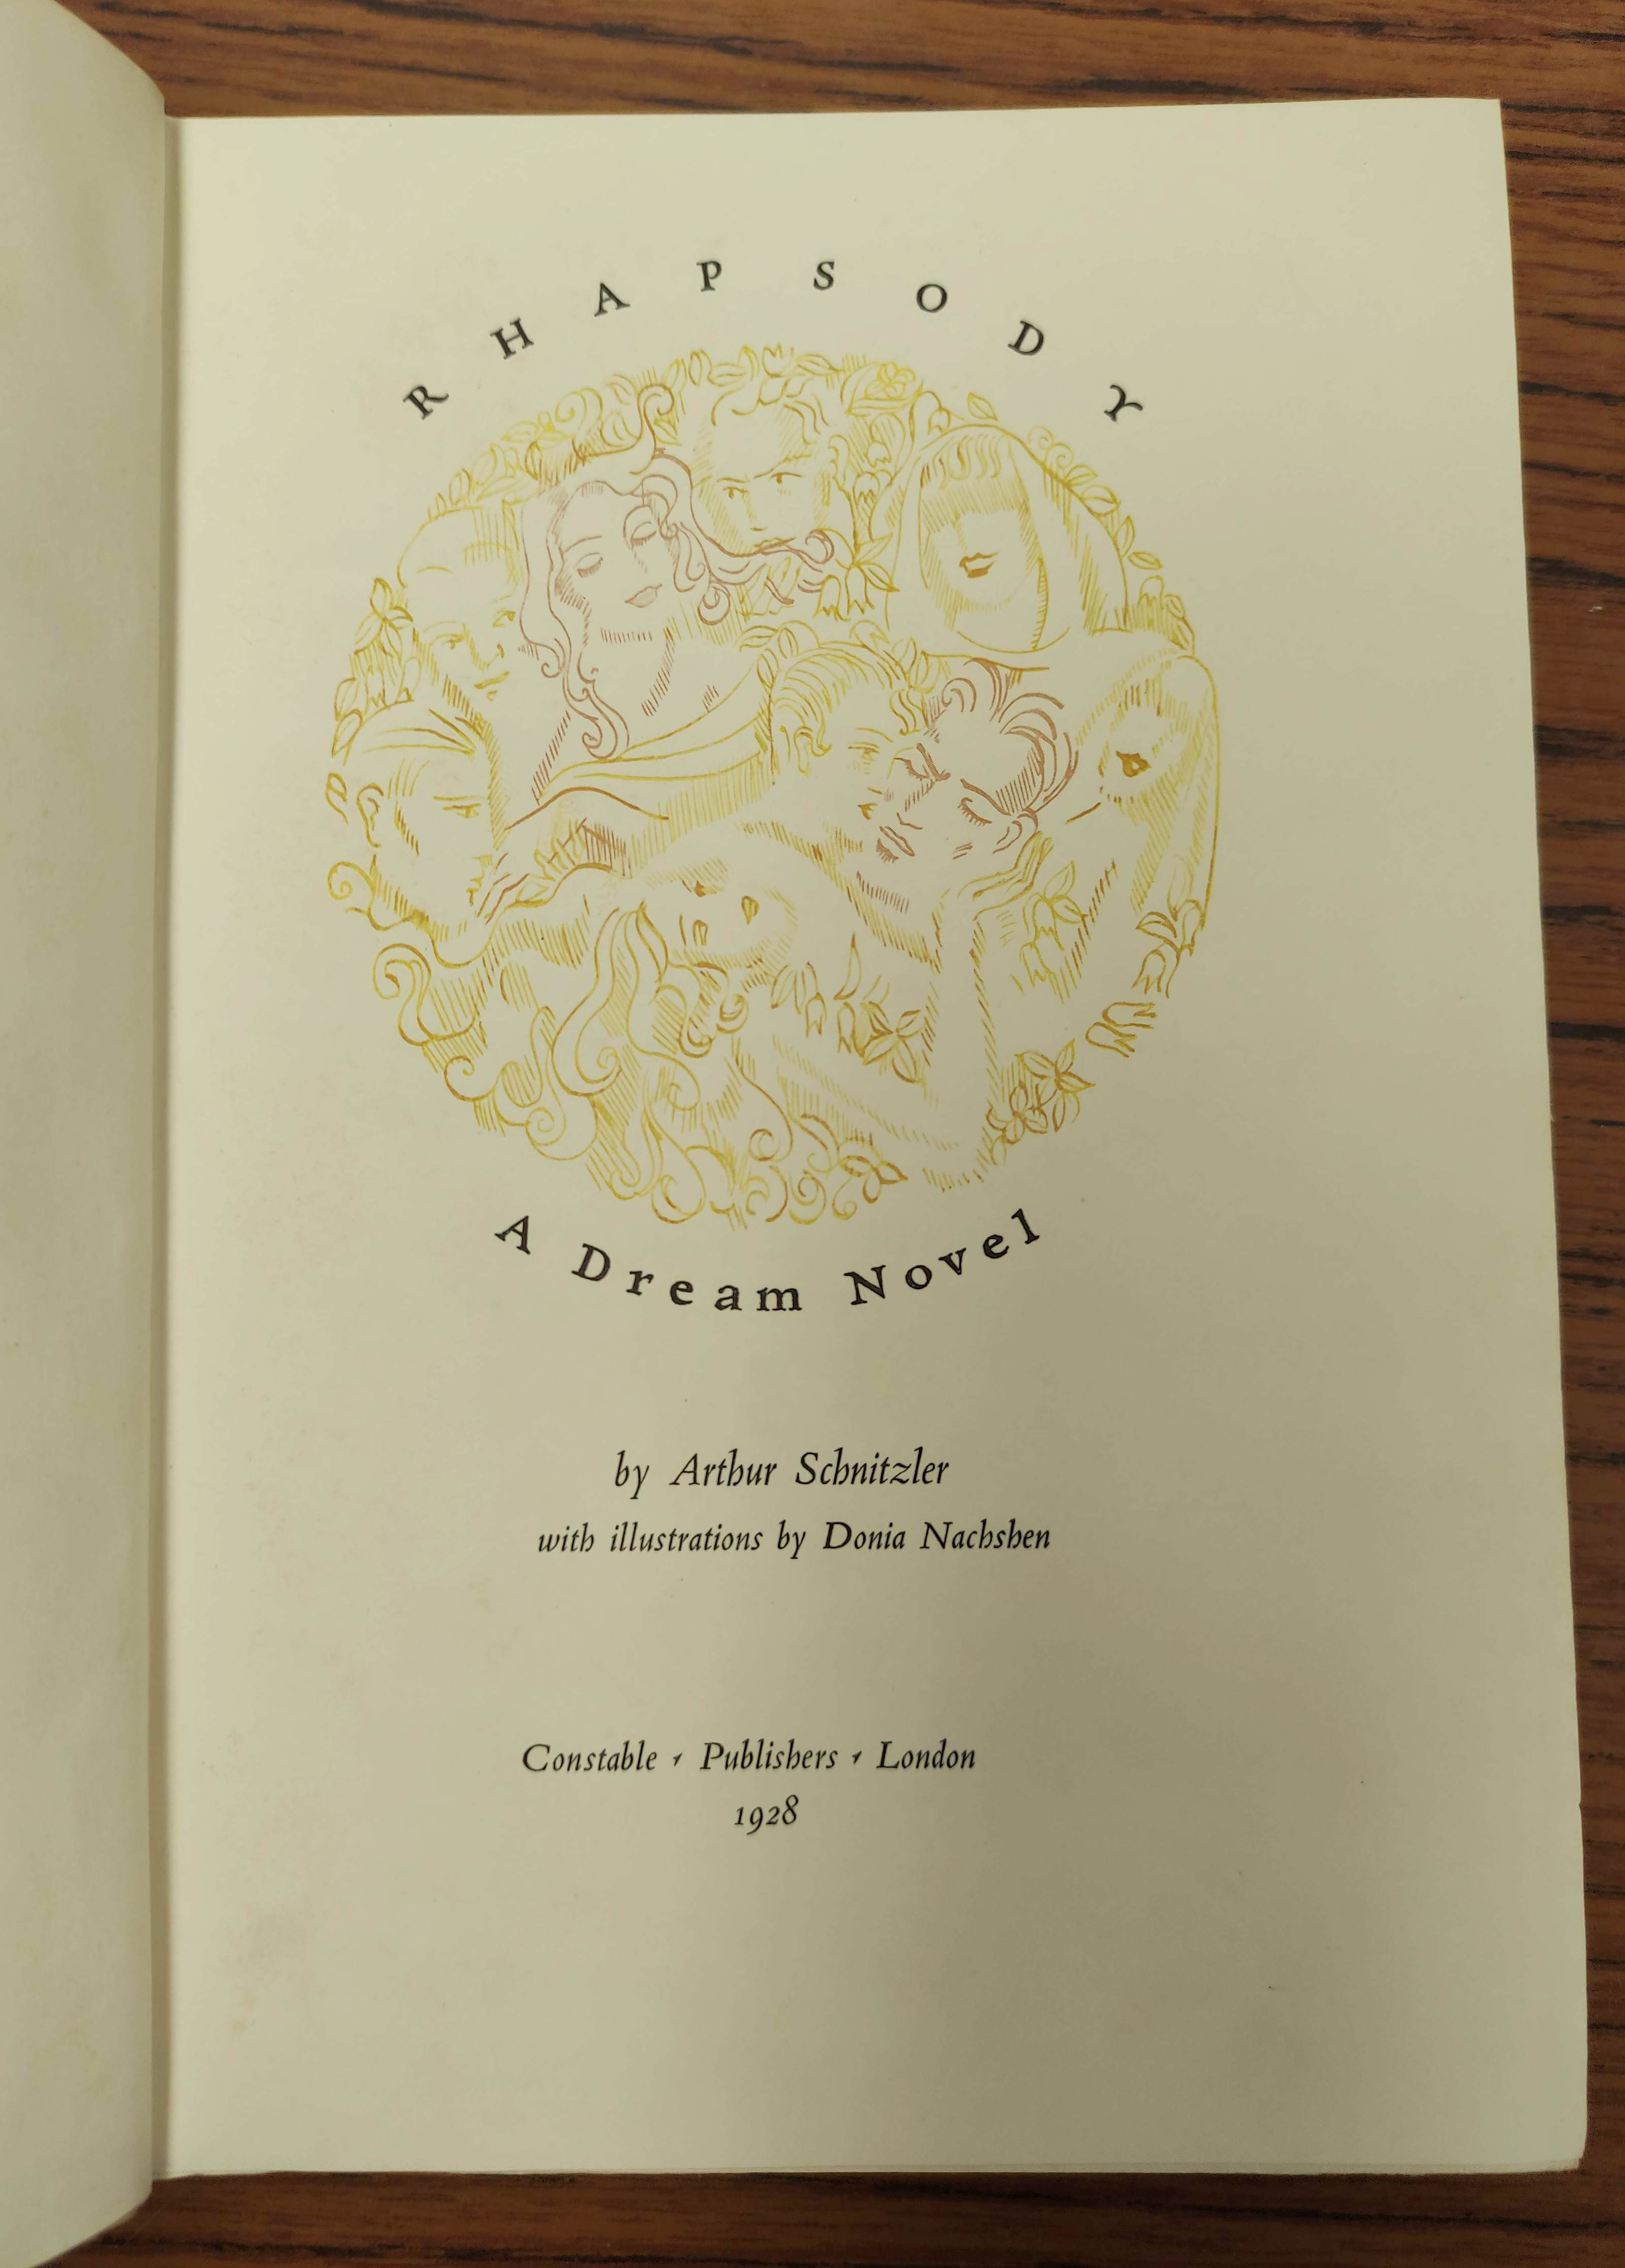 BENVENISTE PIP (Illus).When You Wake Tomorrow by Brian Patten. Ltd. ed. 21/125. Signed by author & - Image 9 of 14